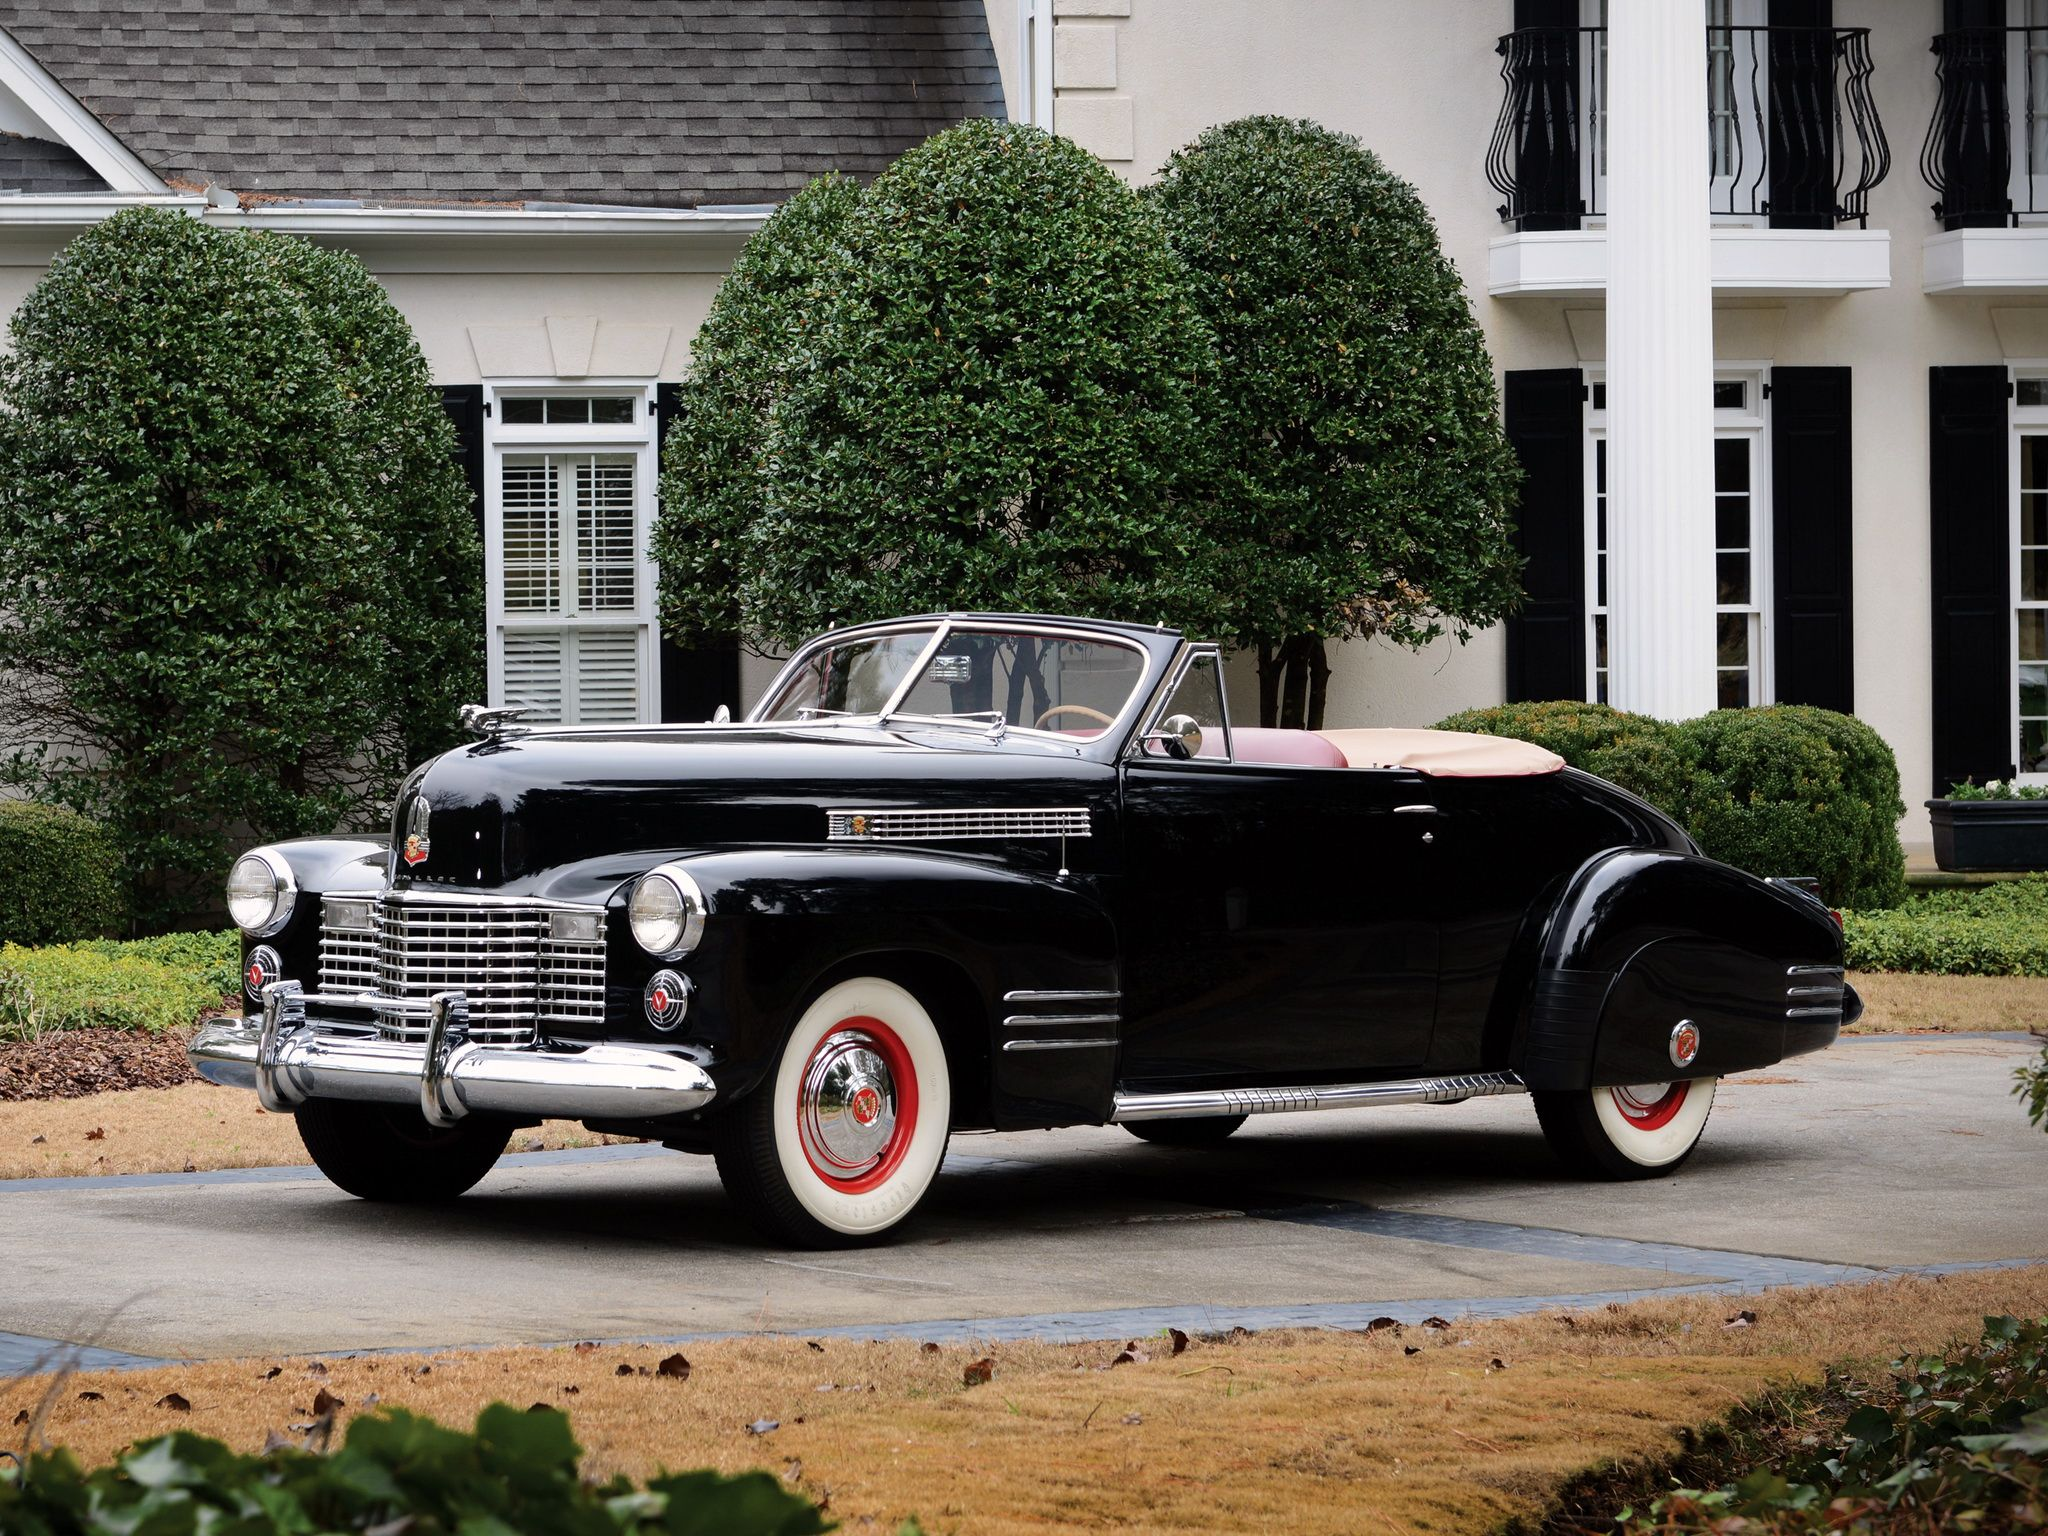 1941 Cadillac Sixty Two Convertible Coupe | Automobiles | Pinterest